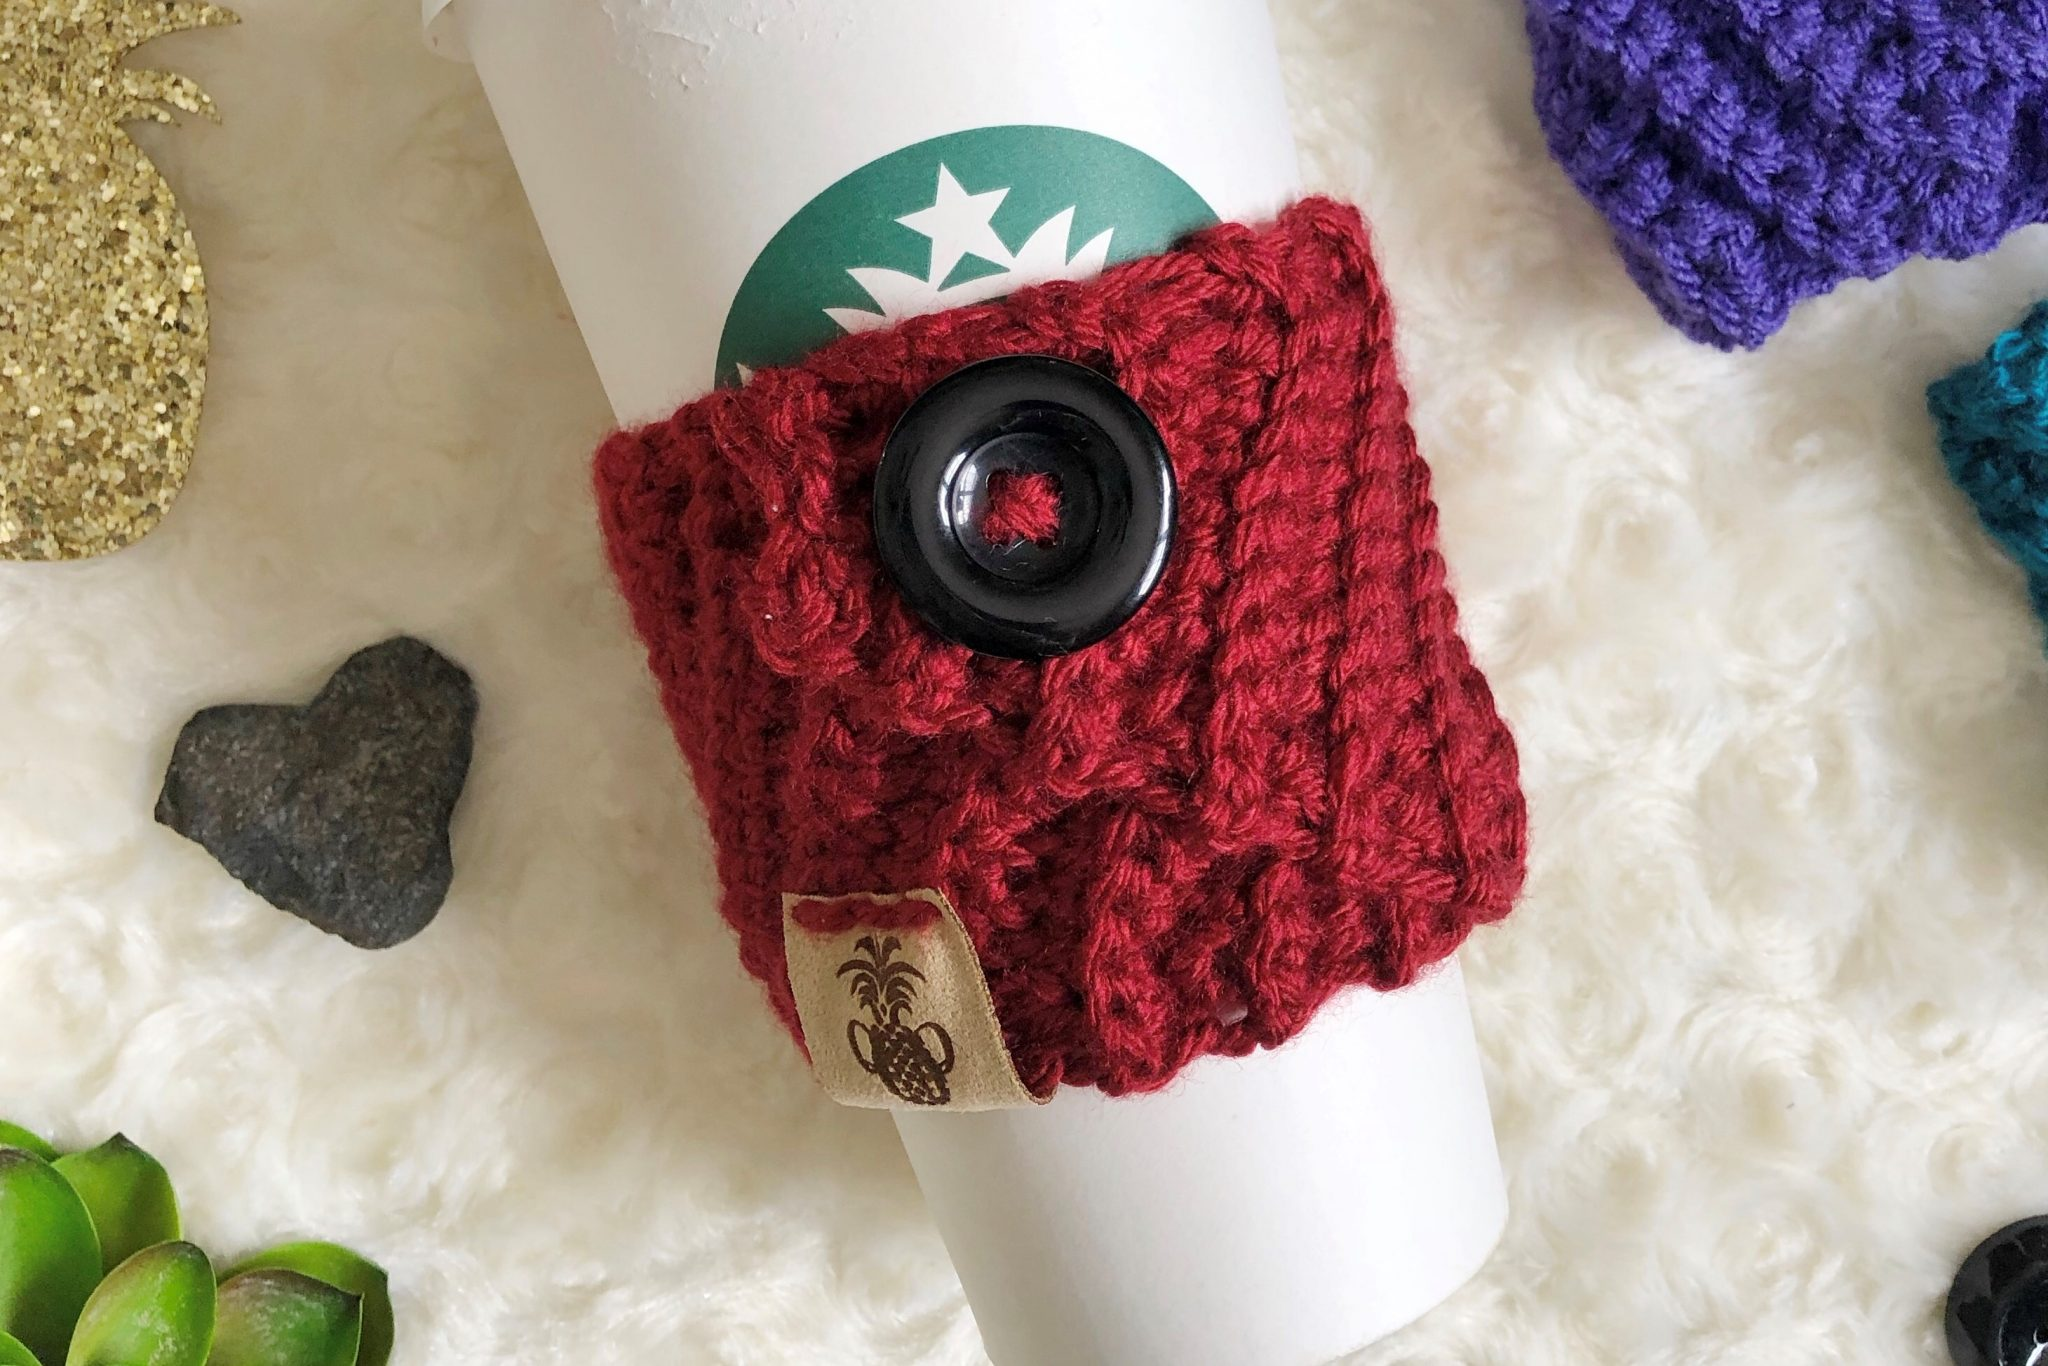 A crochet coffee cozy made with the Kelsi Cozy crochet pattern in red with large black button